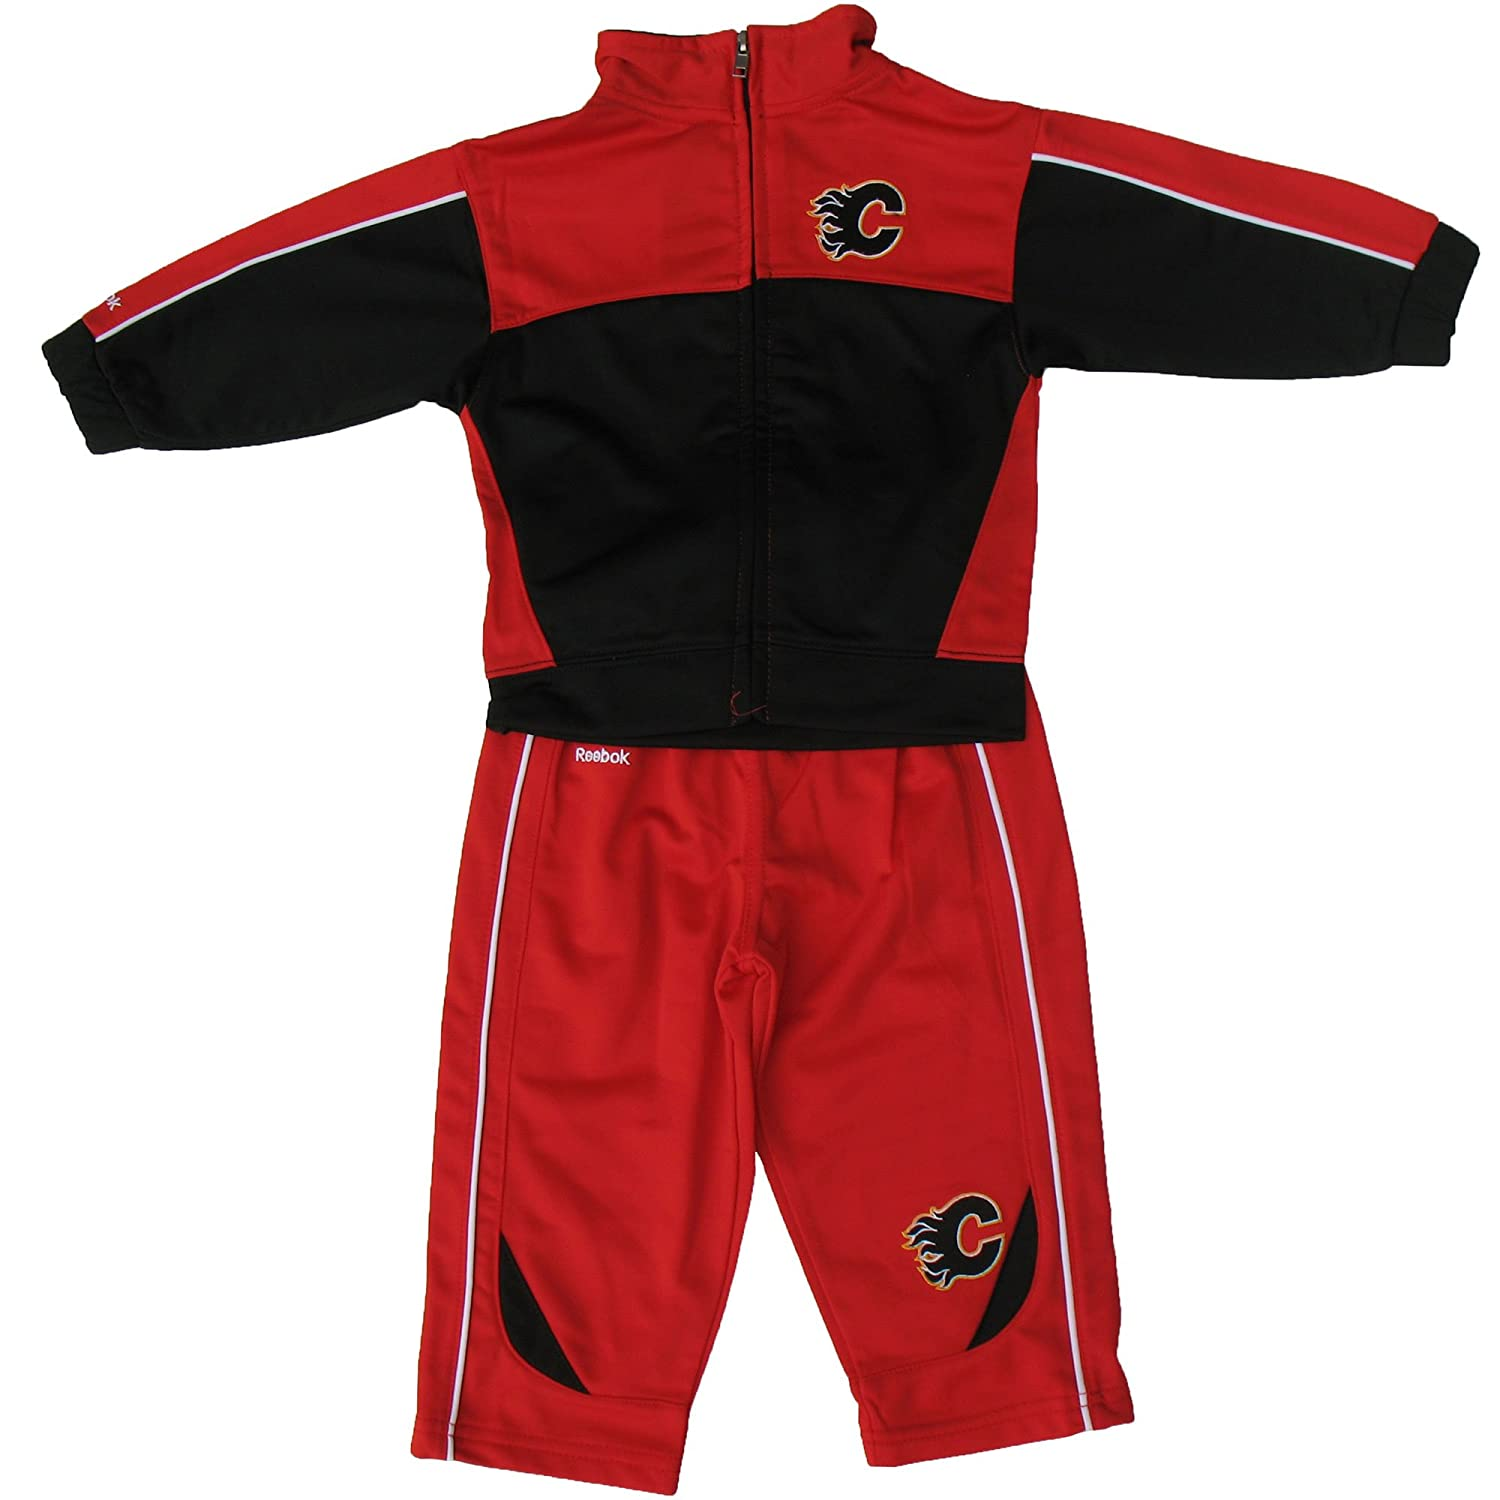 Calgary Flames Infant Zip-Up Jacket & Pant Set - Size 24 Months Reebok